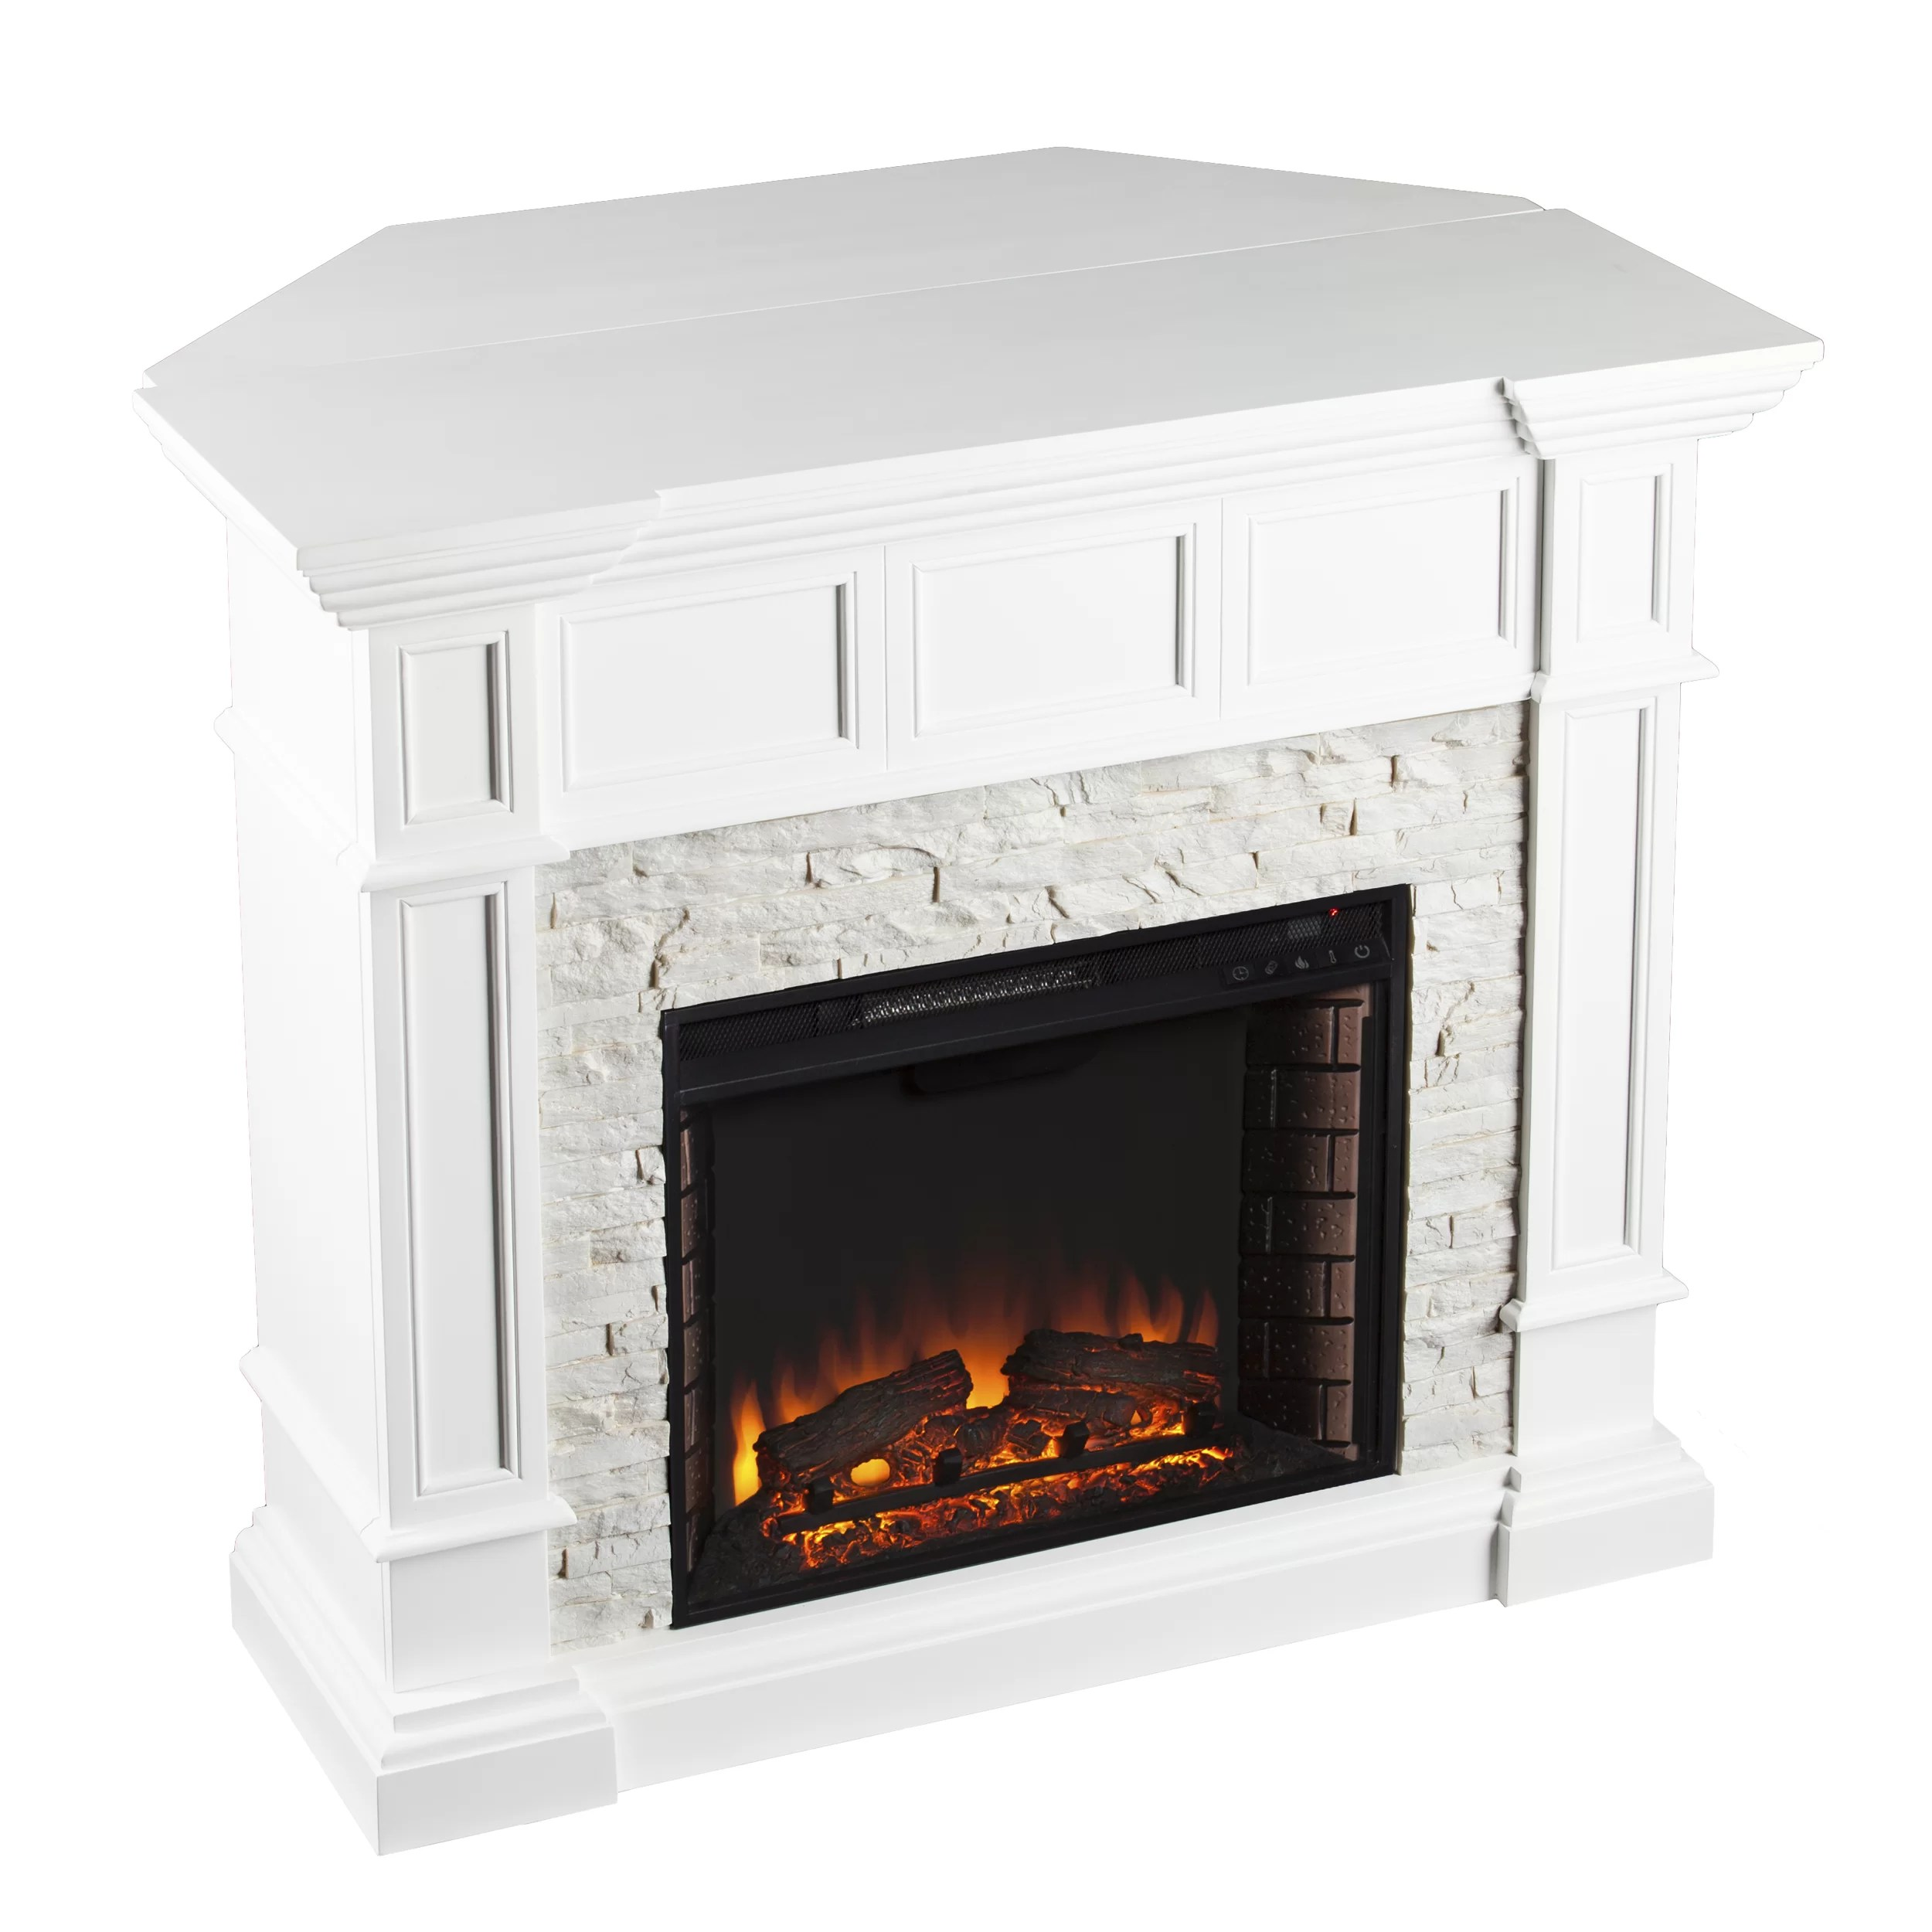 Darby Home Co Prussia Corner Convertible Electric Fireplace  Reviews  Wayfair